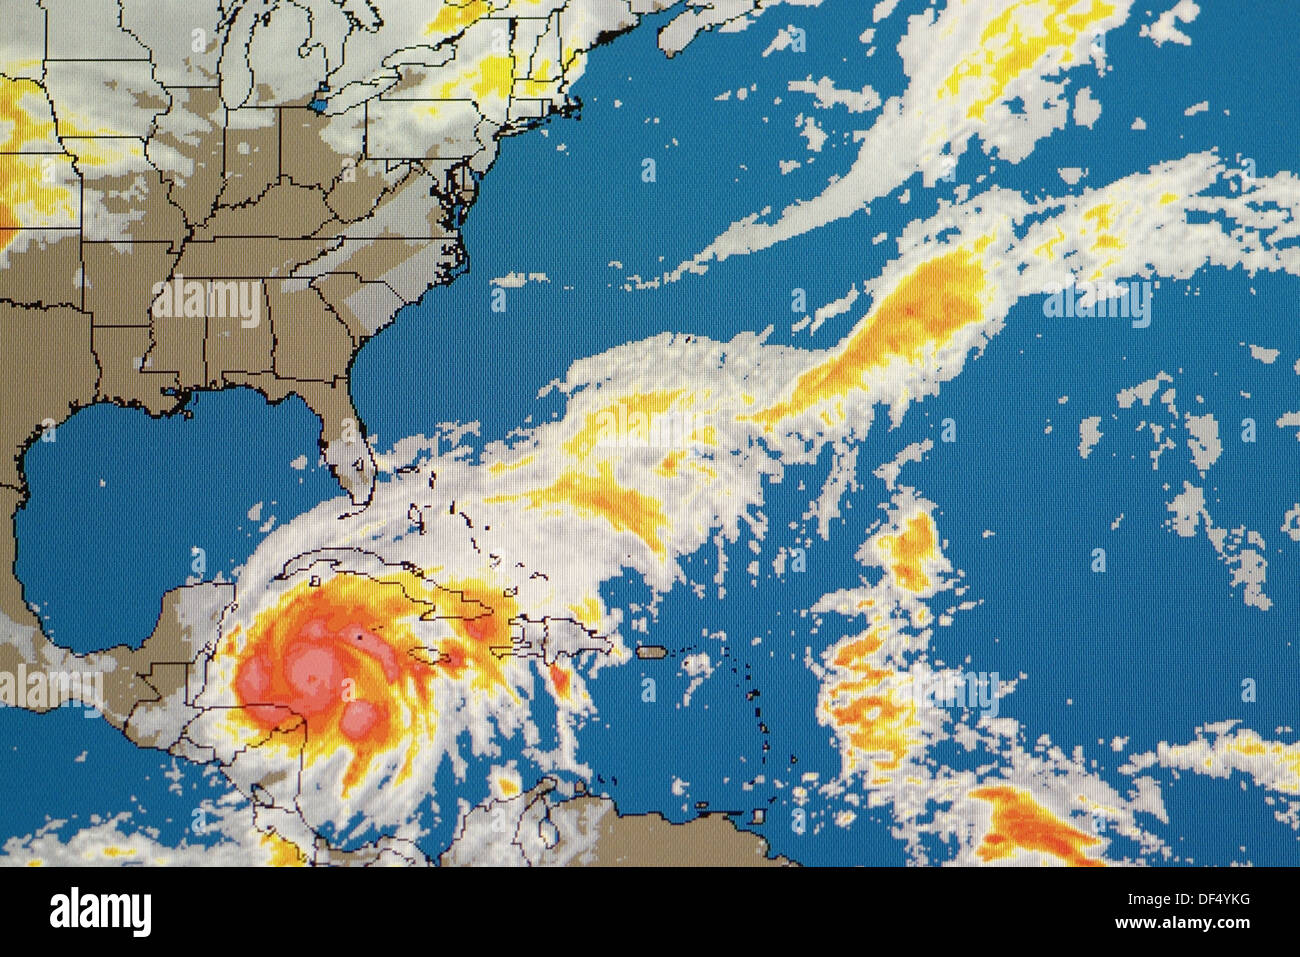 Hurricane Weather Map Of A Level 5 Storm As Viewed On The Internet